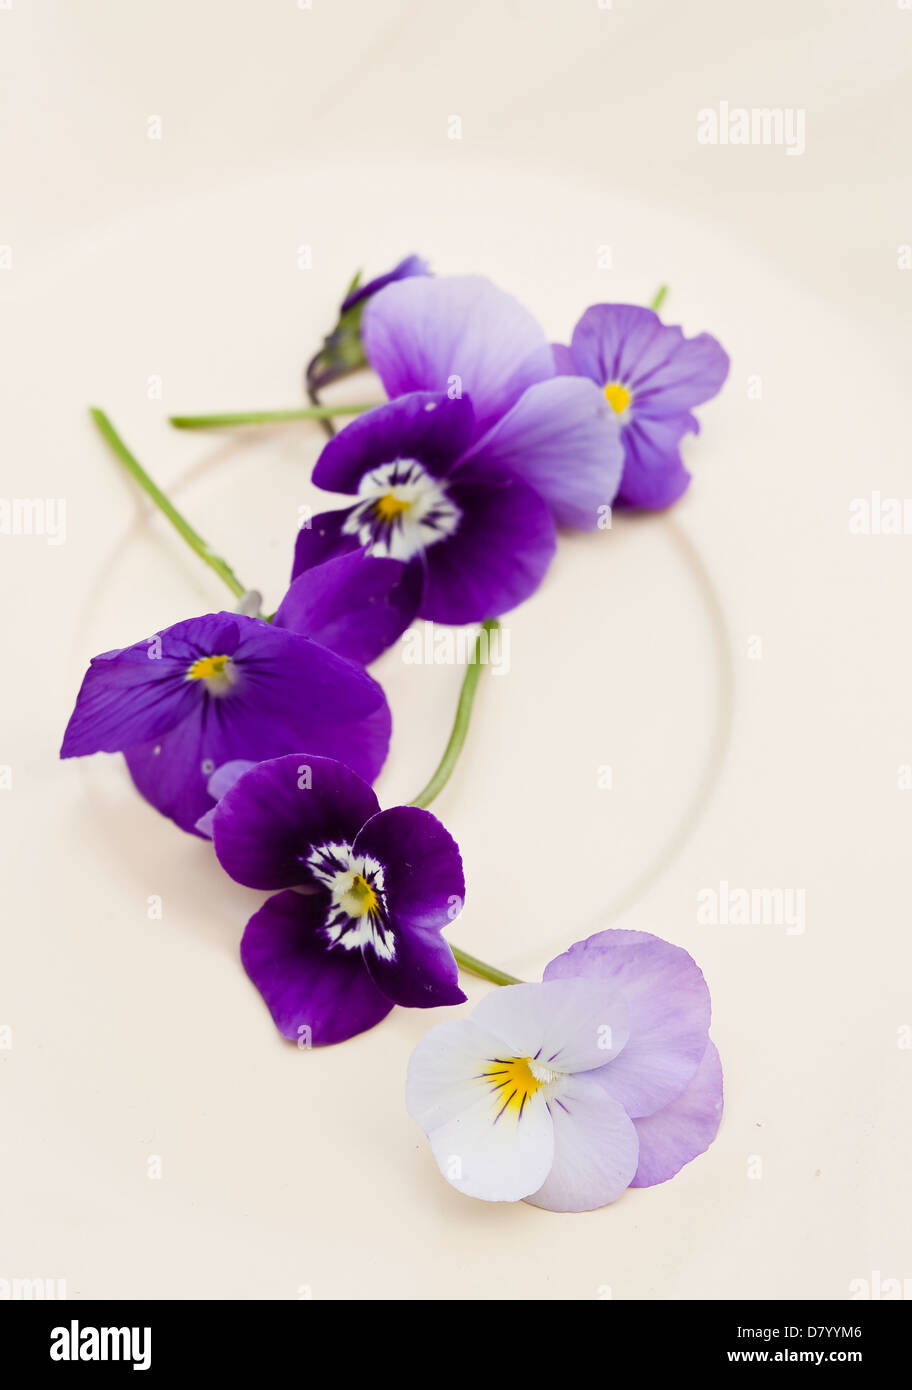 Altos comestibles violet sur une plaque blanche. Photo Stock